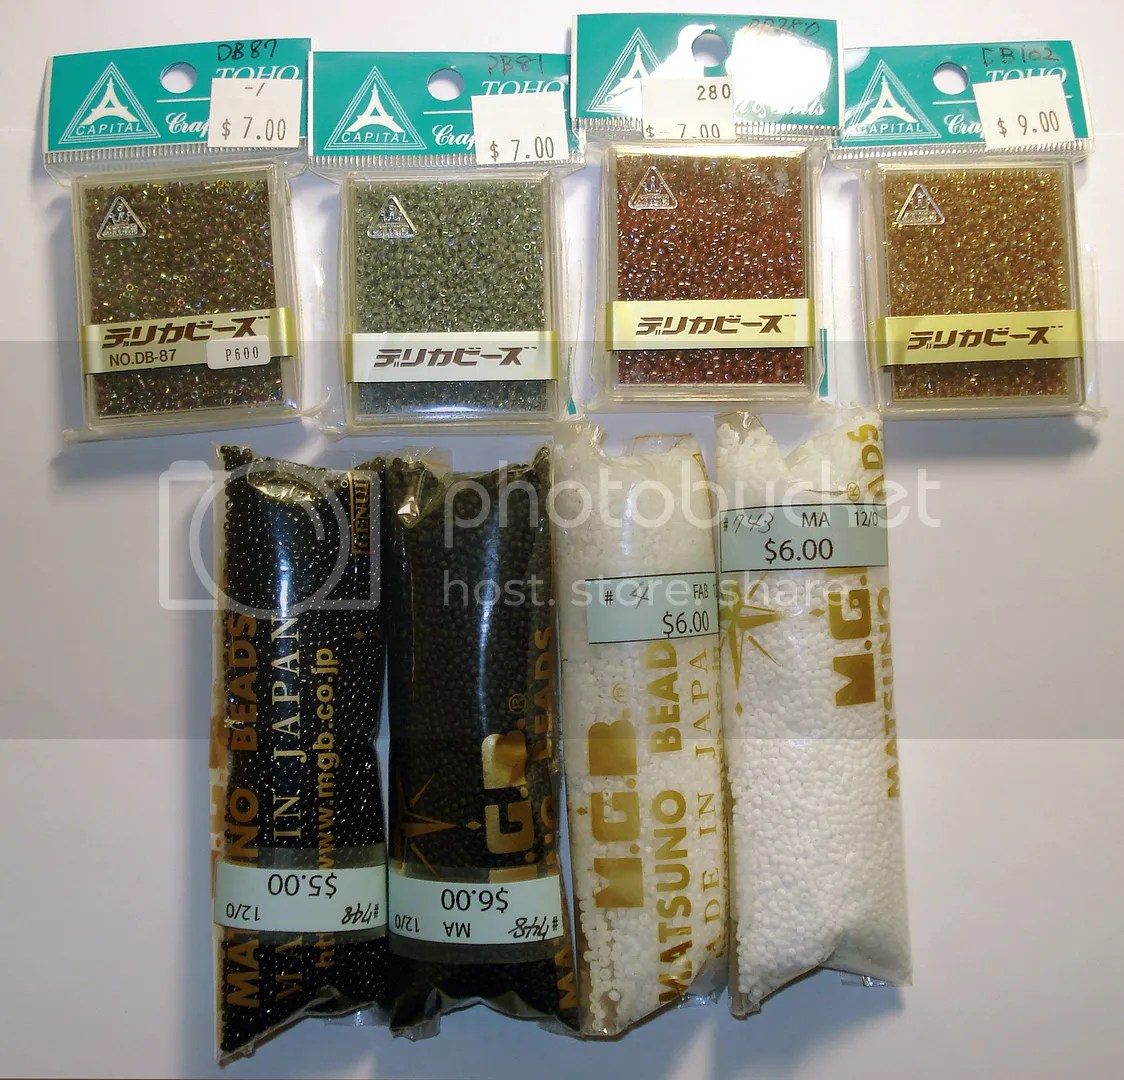 traveling beads bead shops NYC Manhattan New York City thelonebeader bead shopping Toho seed beads